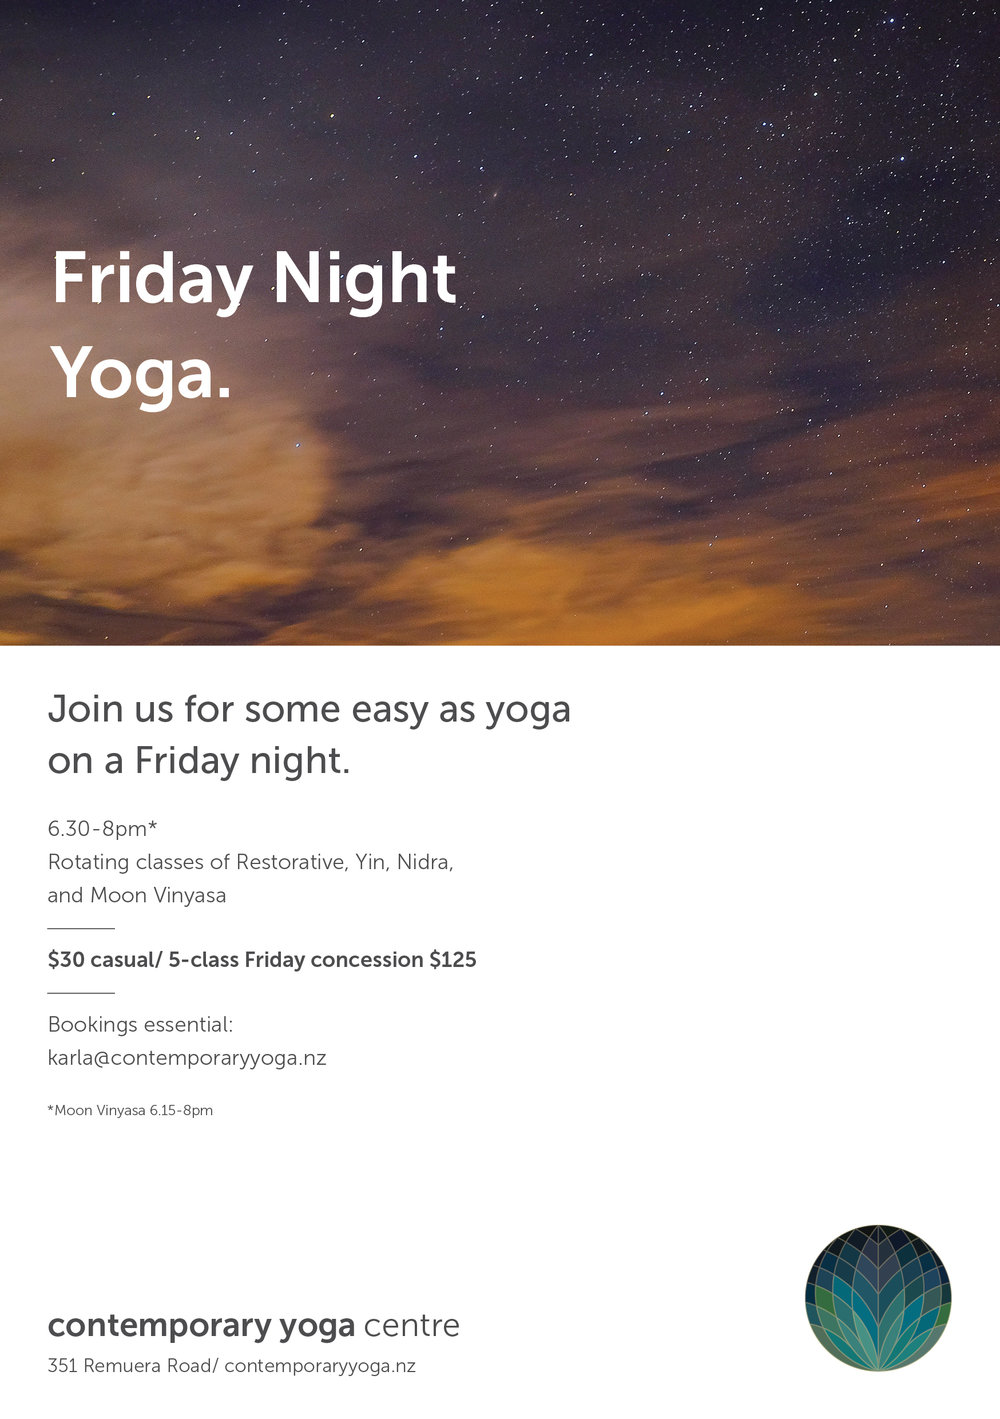 Friday Night Yoga Gatherings